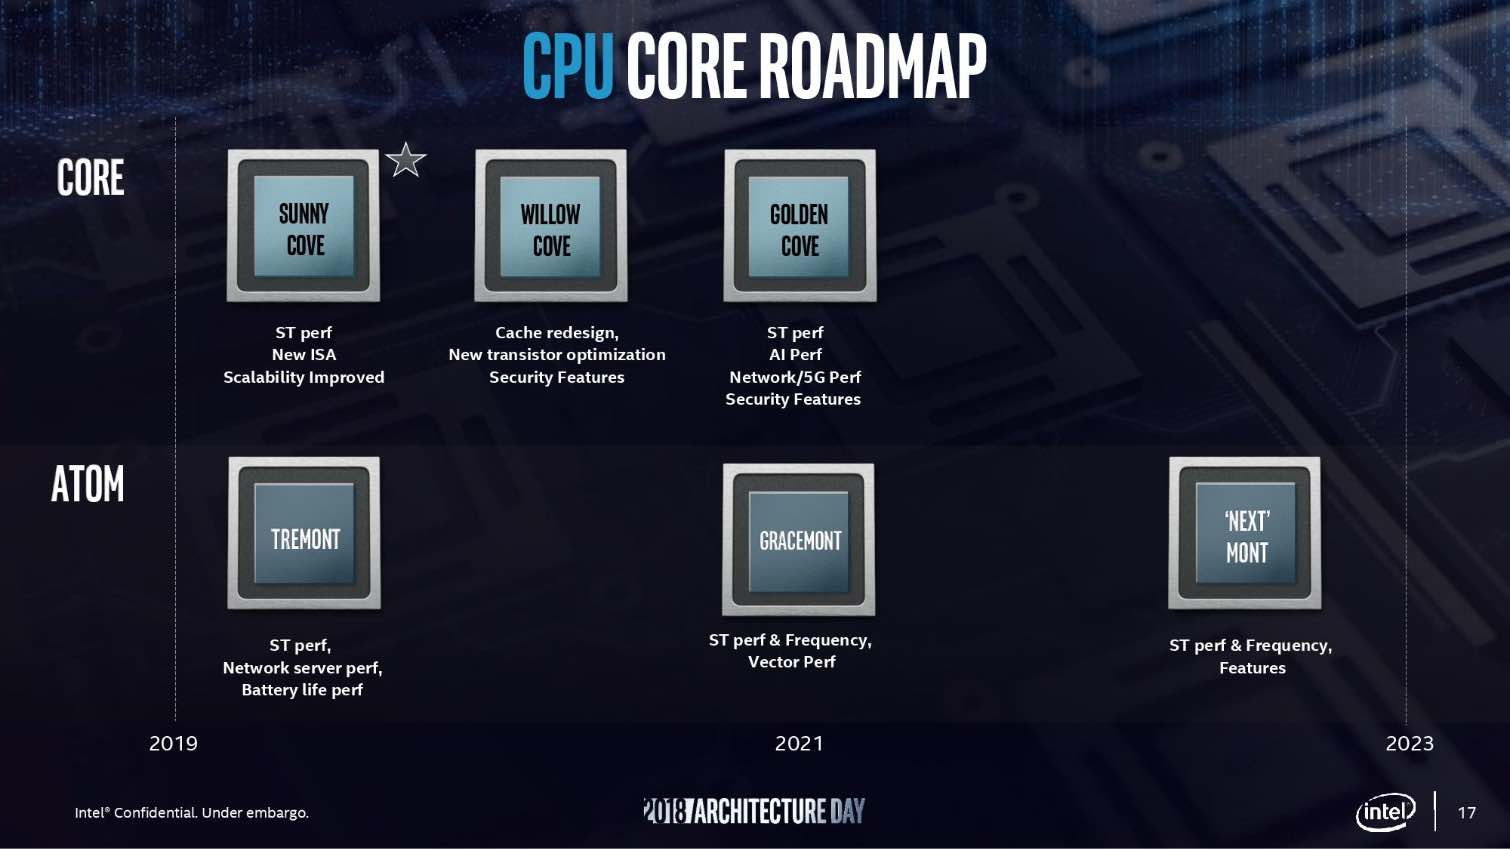 Intel CPU roadmap 2019-2023